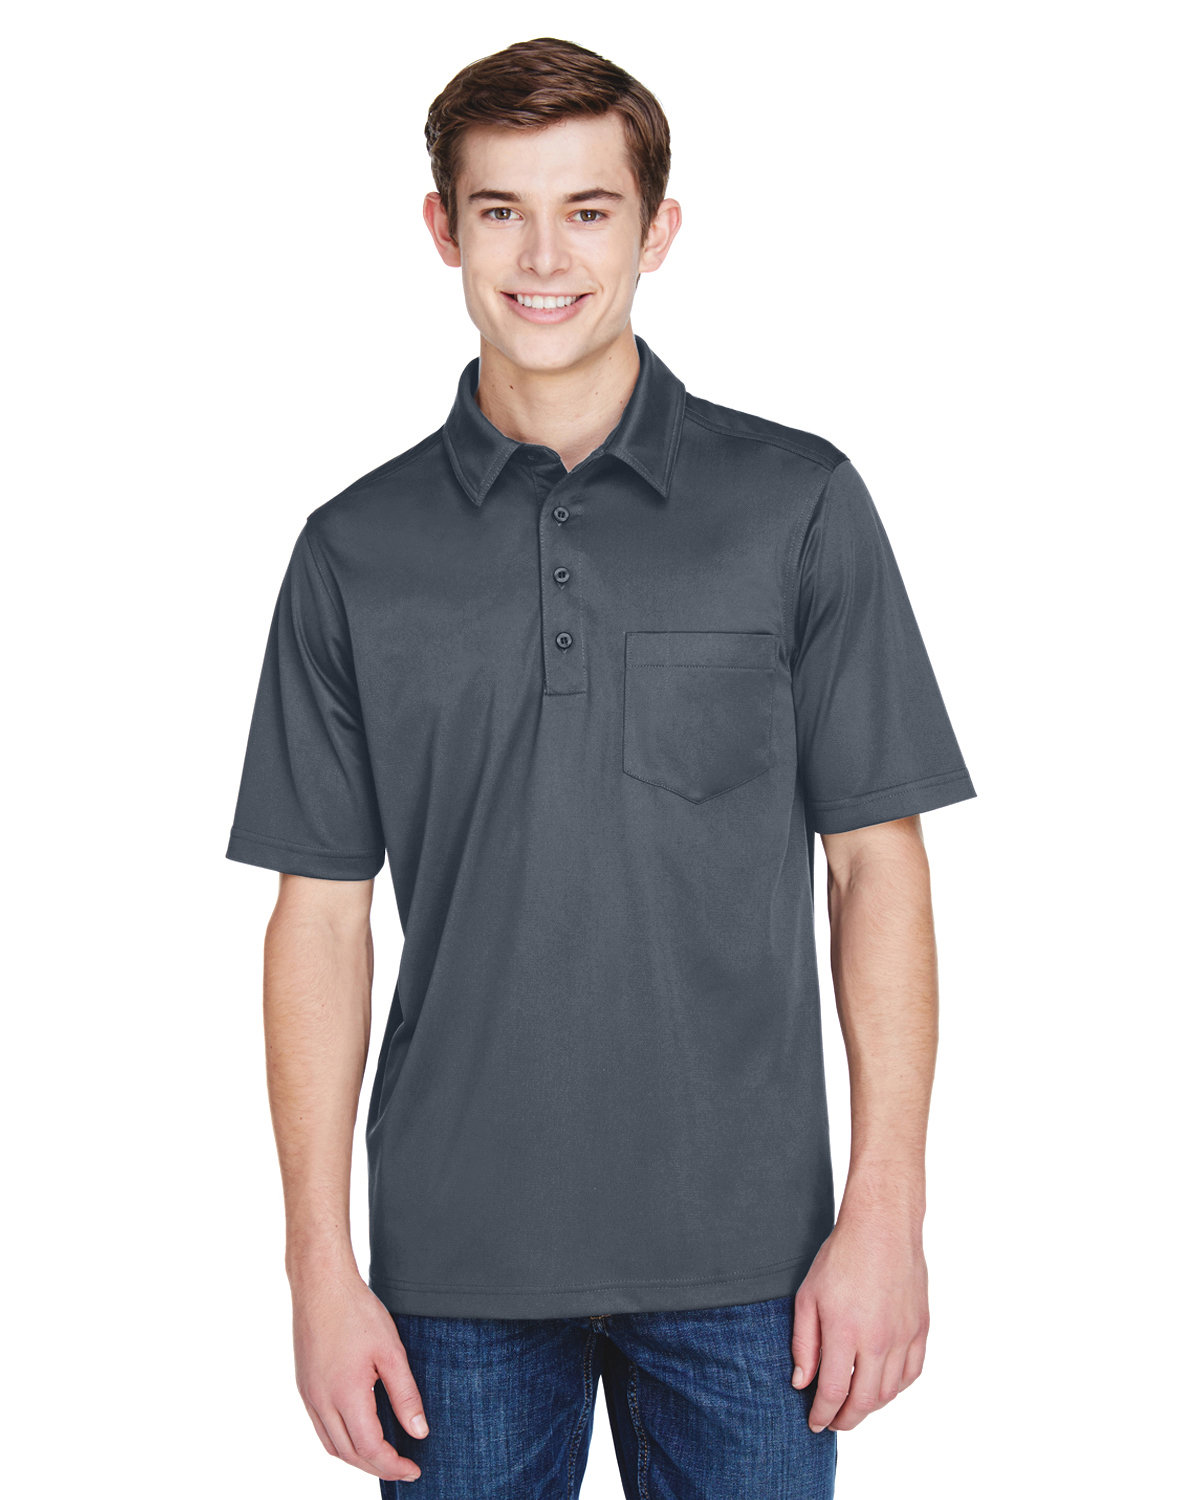 Extreme Men's Tall Eperformance™ Shift Snag Protection Plus Polo CARBON